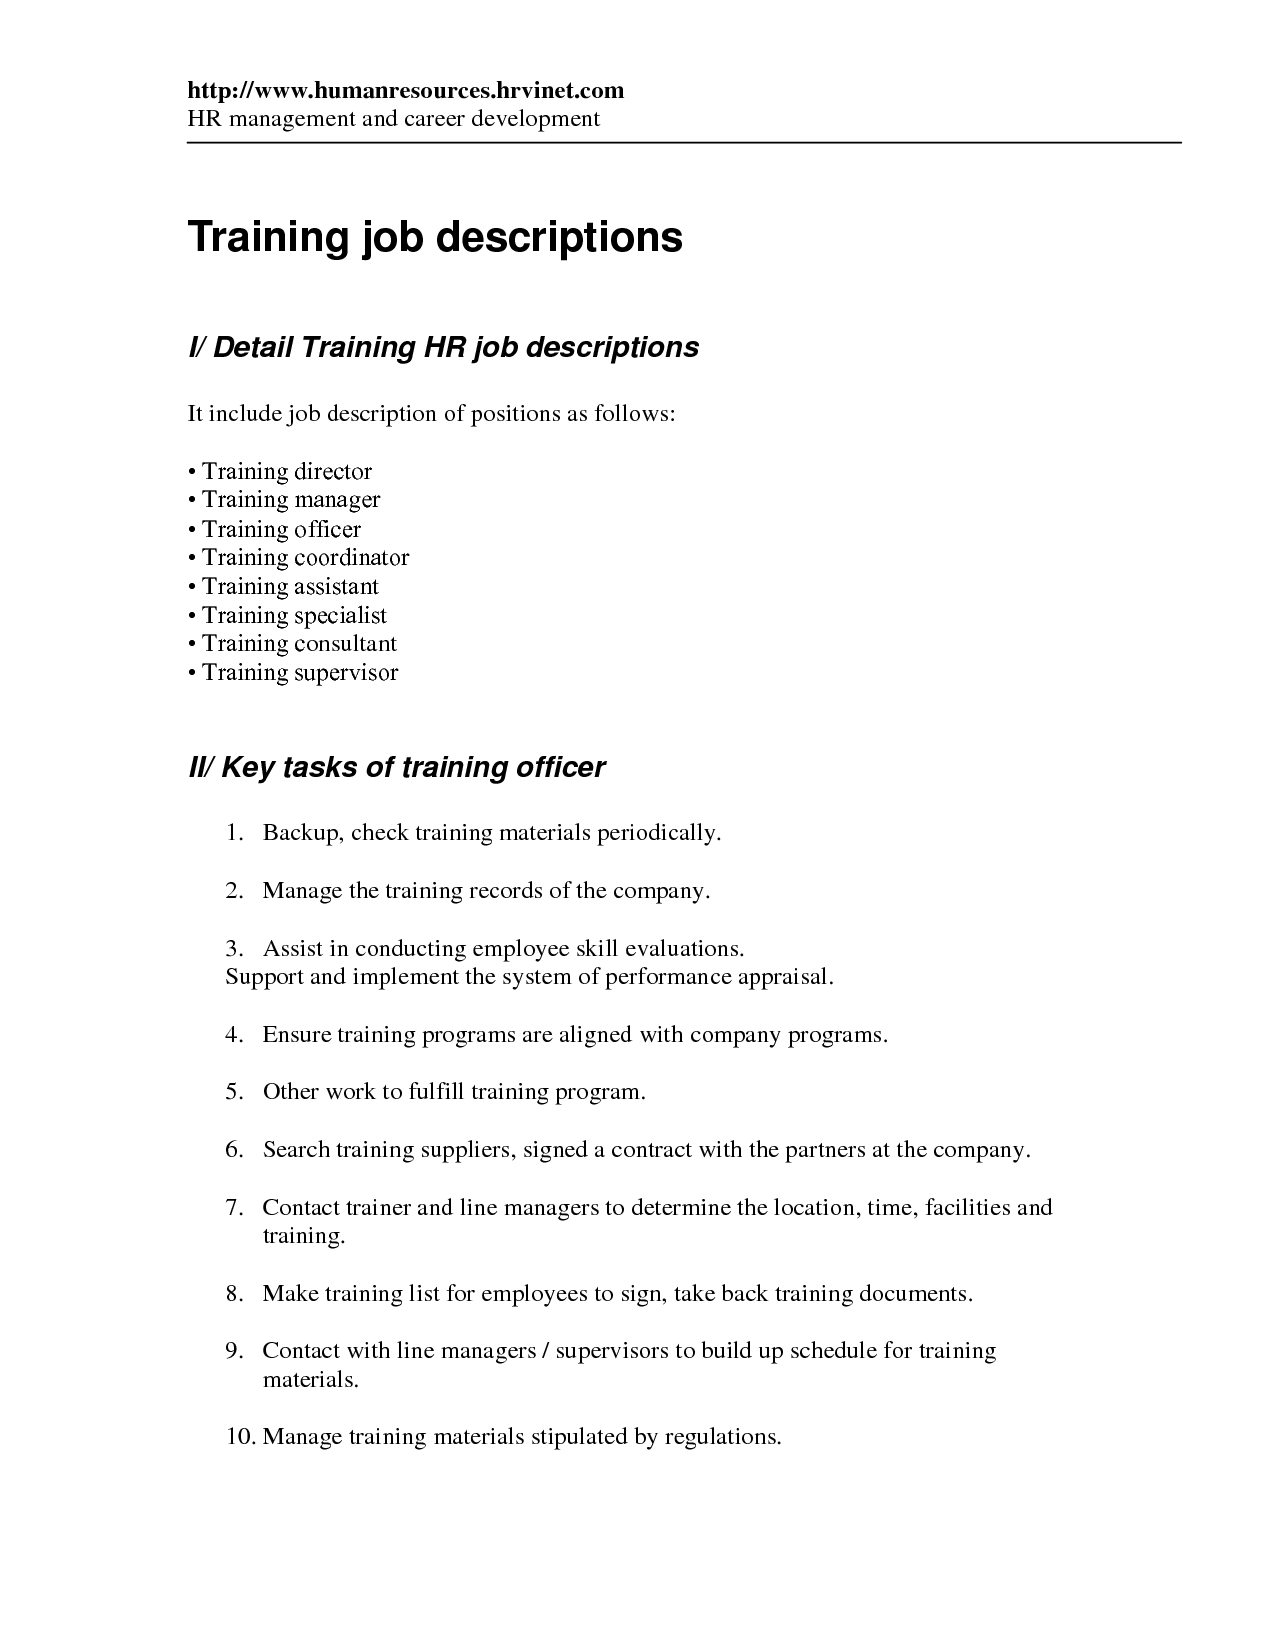 Training Job Description  Human Resources Job Description Resume